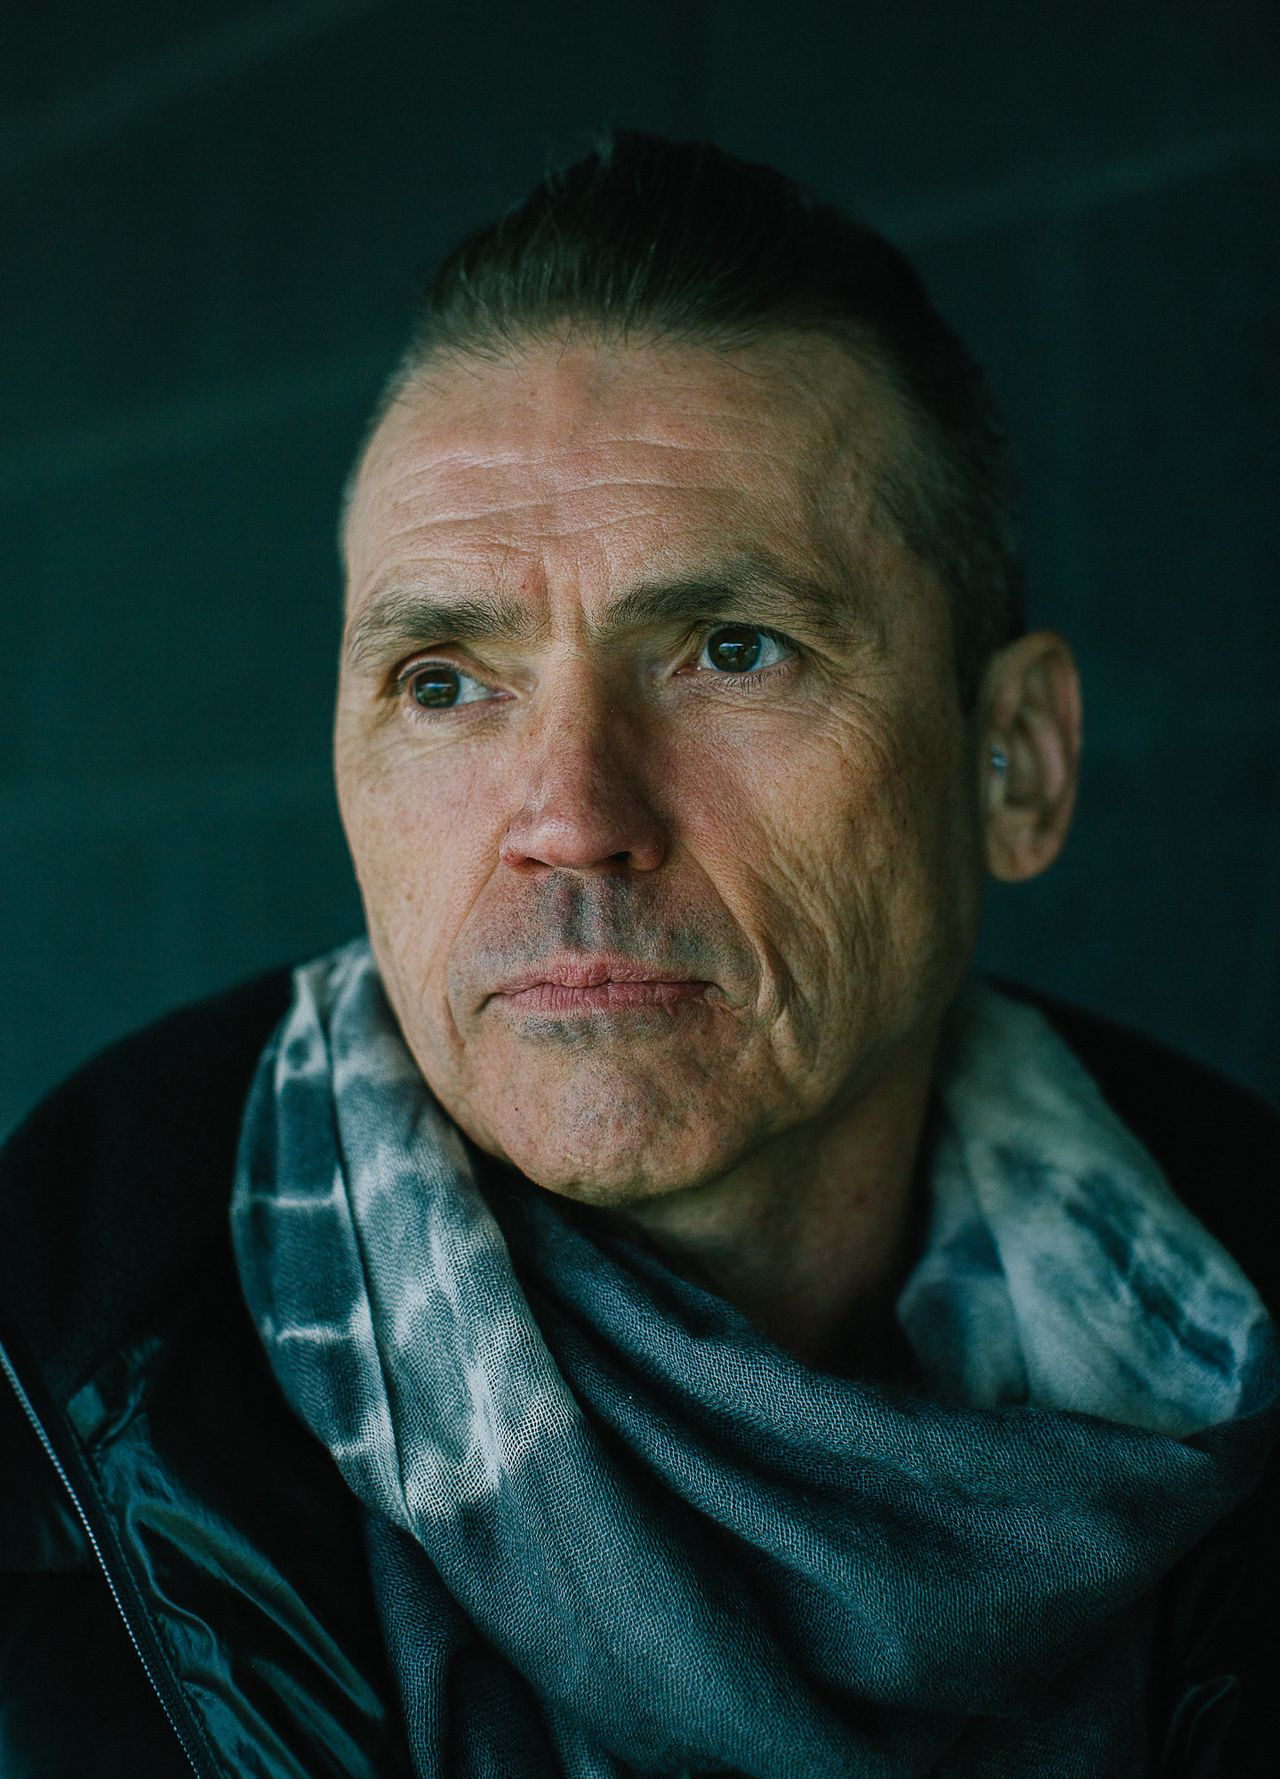 Dale Vince, chairman of Forest Green Rovers and worth an estimated $130 million, has brought environmentalism to the soccer club.